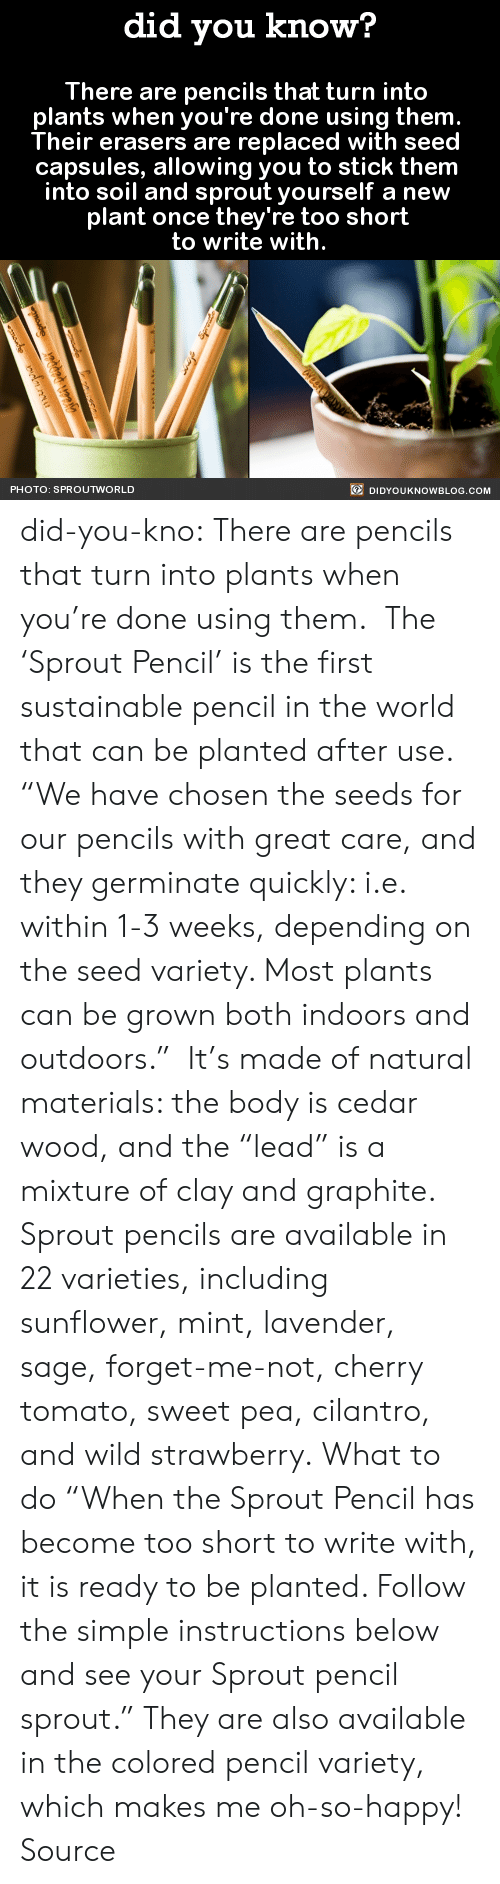 "Gif, Tumblr, and Blog: did you know?  There are pencils that turn into  plants when you're done using them  Their erasers are replaced with seed  capsules, allowing you to stick them  into soil and sprout yourself a new  plant once they're too short  to write with.  PHOTO: SPROUTWORLD  DIDYOUKNOWBLOG.COM did-you-kno:  There are pencils that turn into  plants when you're done using them.    The 'Sprout Pencil' is the first sustainable pencil in the world that can be planted after use.   ""We have chosen the seeds for our pencils with great care, and they germinate quickly: i.e. within 1-3 weeks, depending on the seed variety. Most plants can be grown both indoors and outdoors.""  It's made of natural materials: the body is cedar wood, and the ""lead"" is a mixture of clay and graphite. Sprout pencils are available in 22 varieties, including sunflower, mint, lavender, sage, forget-me-not, cherry tomato, sweet pea, cilantro, and wild strawberry. What to do ""When the Sprout Pencil has become too short to write with, it is ready to be planted. Follow the simple instructions below and see your Sprout pencil sprout."" They are also available in the colored pencil variety, which makes me oh-so-happy!  Source"